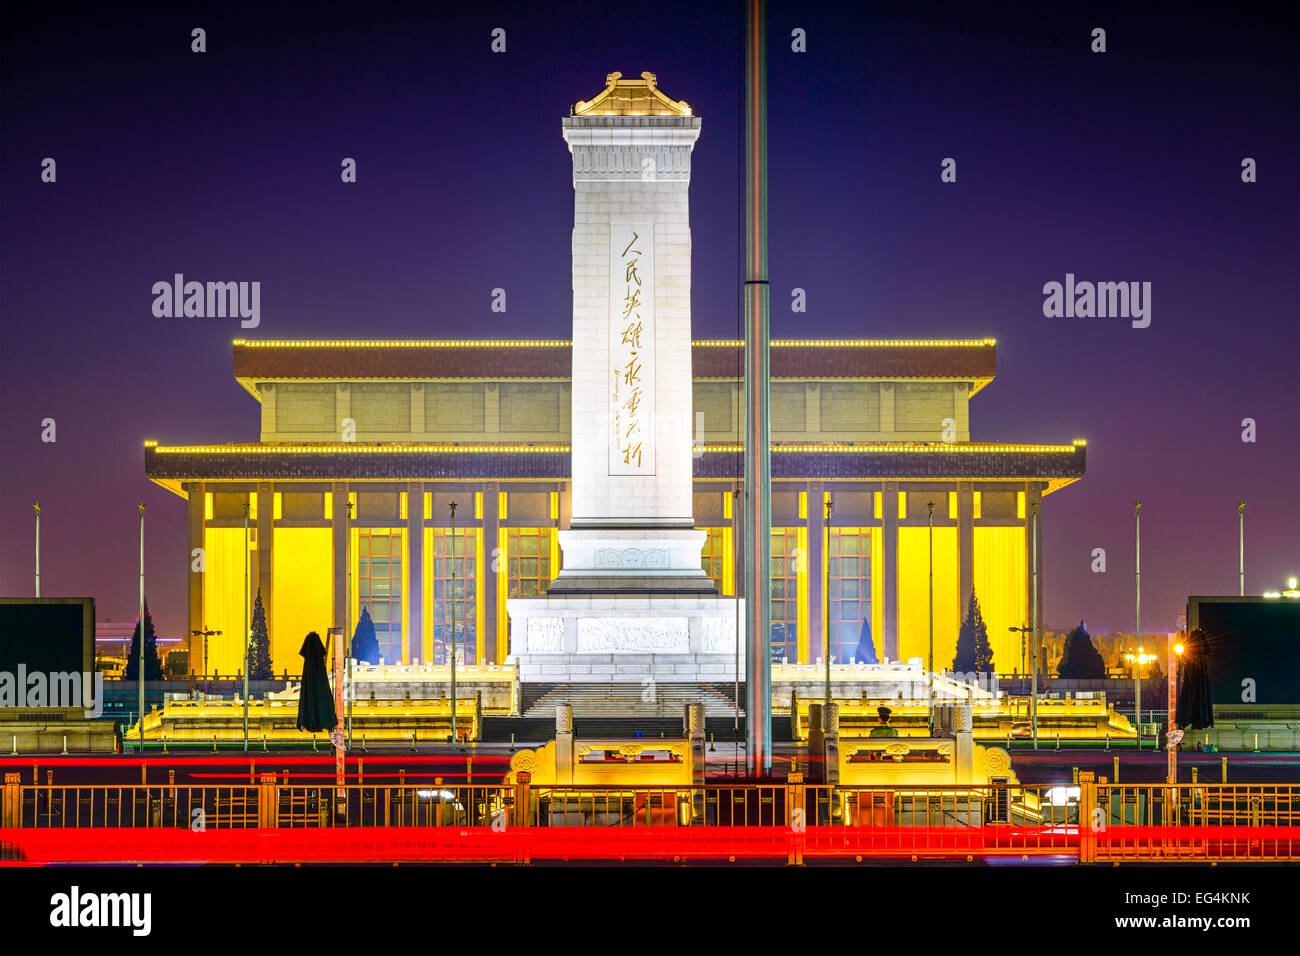 Beijing, China at the Monument to the People's Heroes in Tiananmen Square at night. - Stock Image